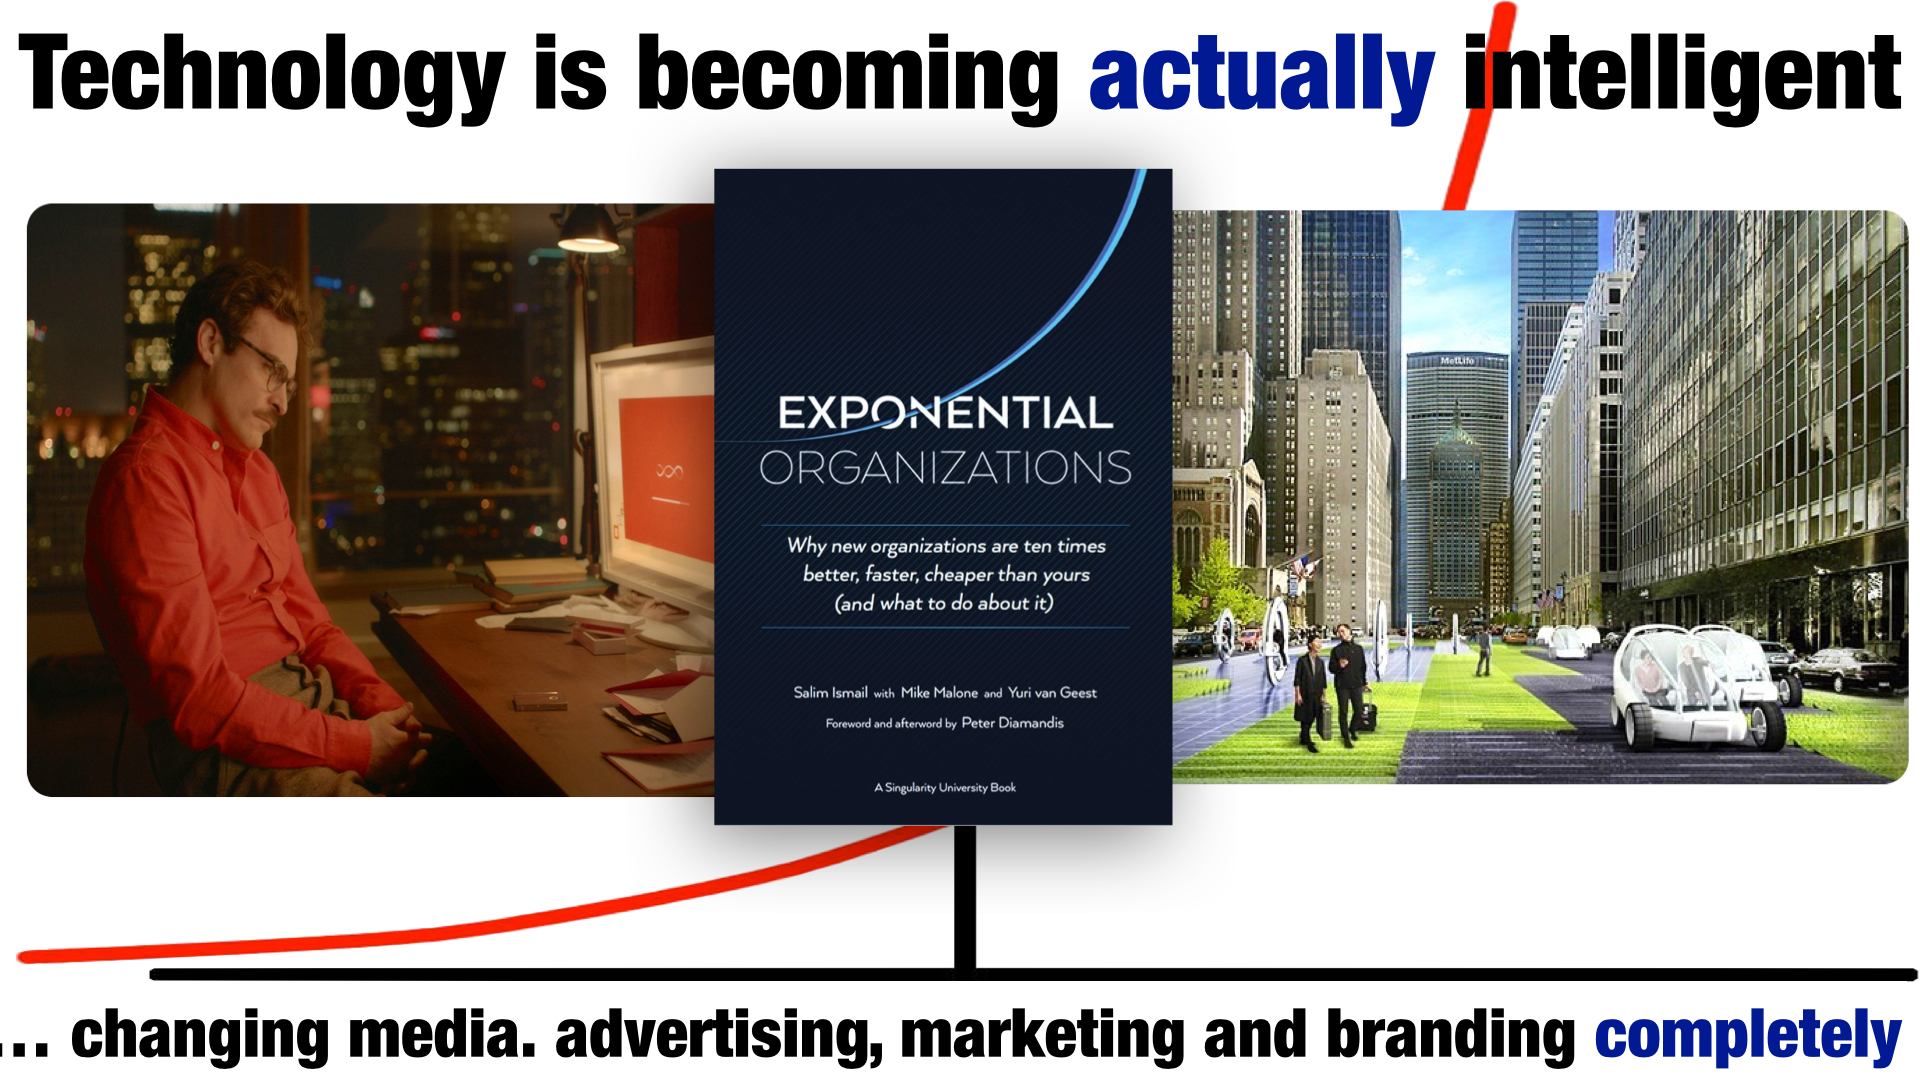 Future of Business Marketing Advertising Futurist Speaker Gerd Leonhard Public.011